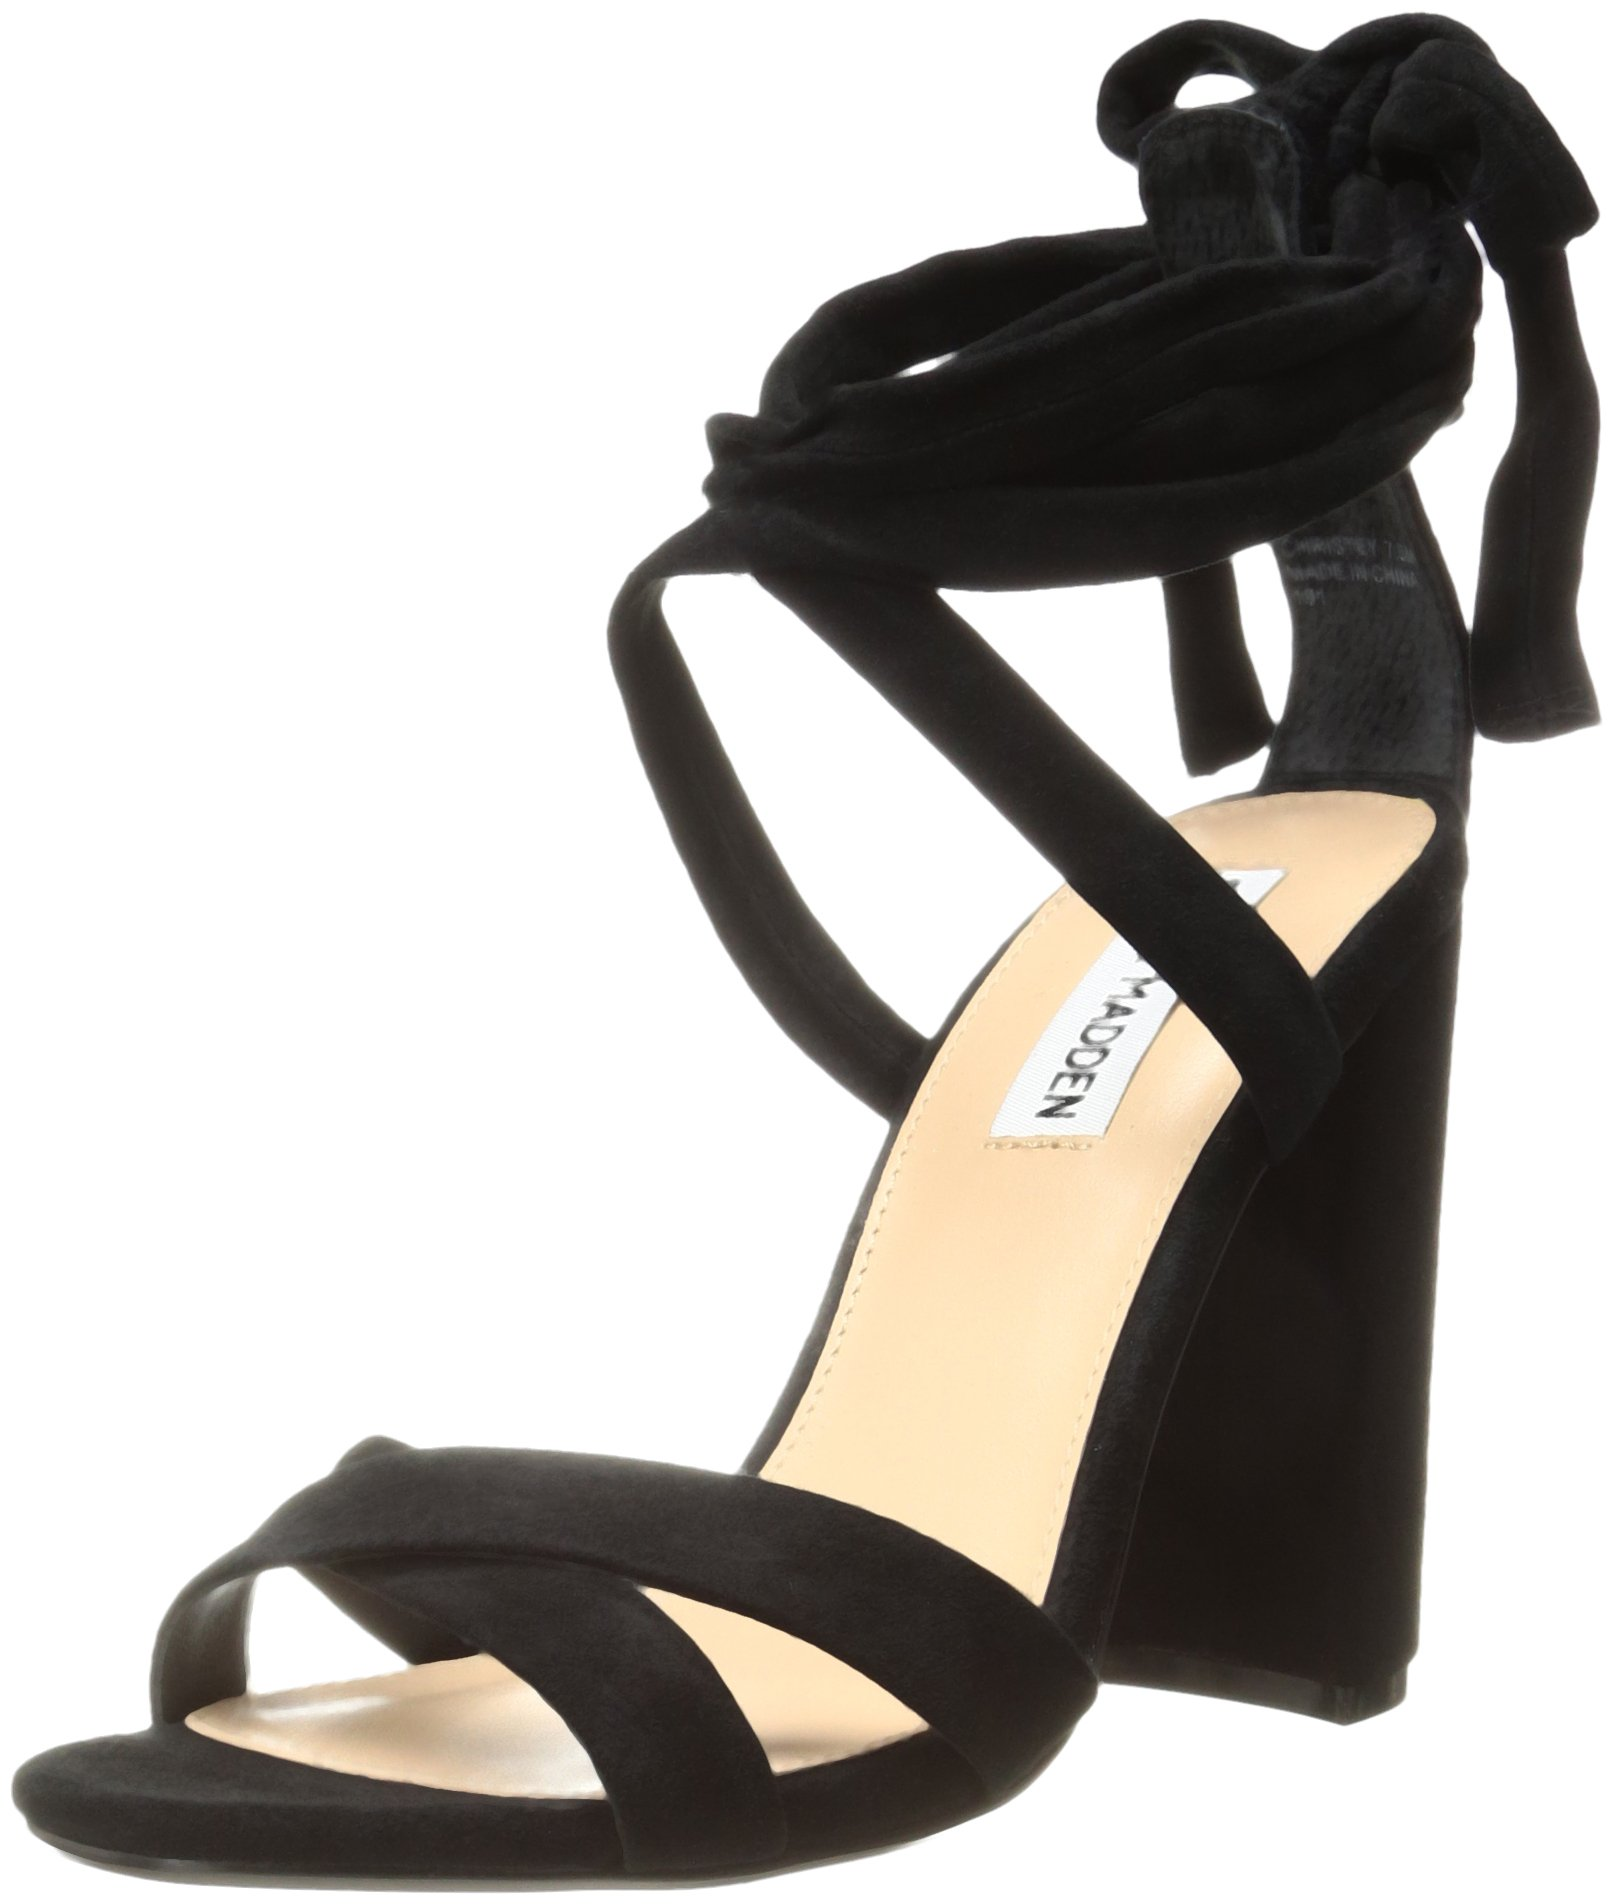 Steve Madden Women's Christey Dress Sandal, Black Suede, 9 M US by Steve Madden